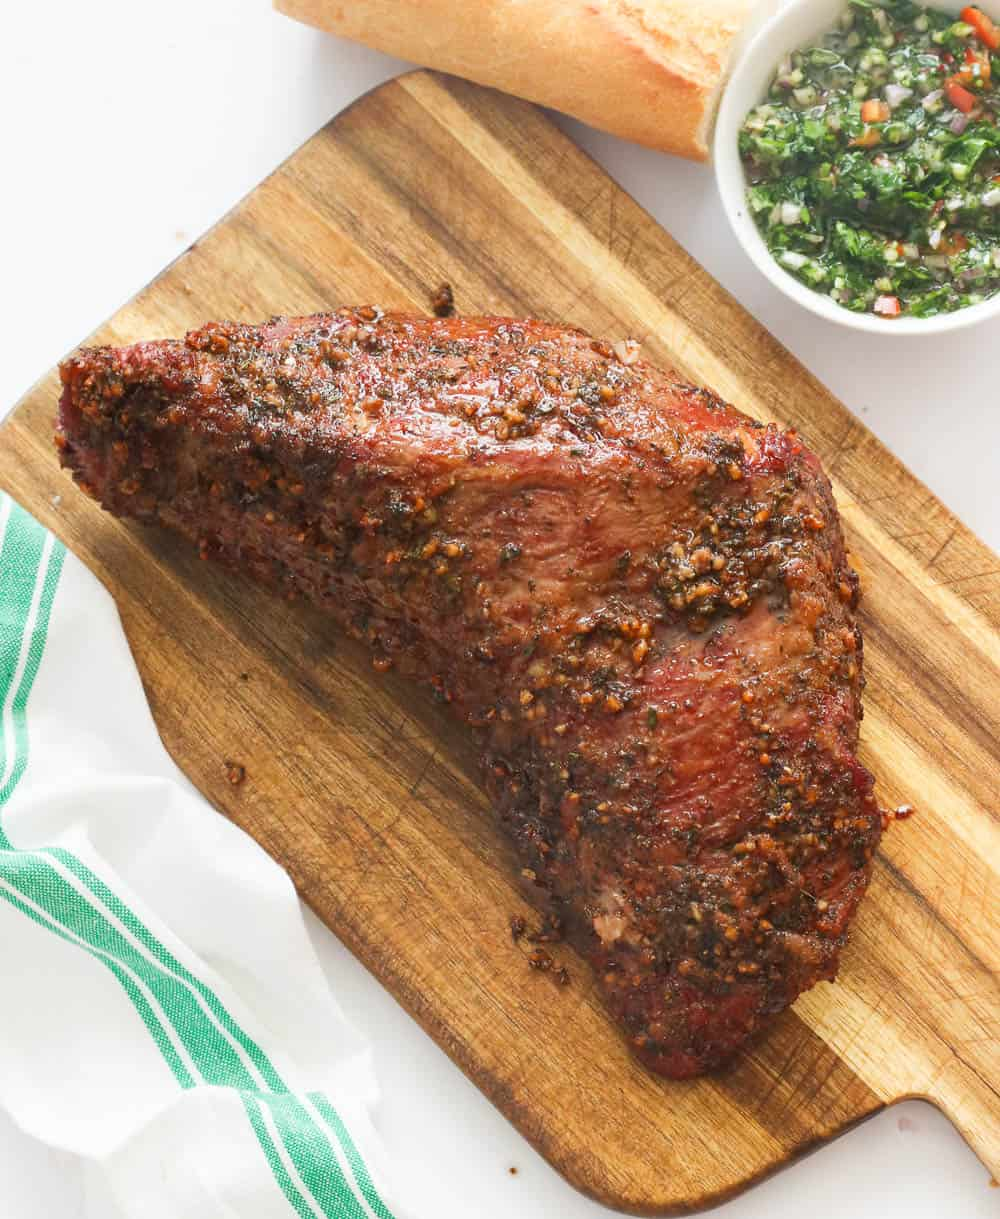 Whole marinated smoked meat on a chopping board